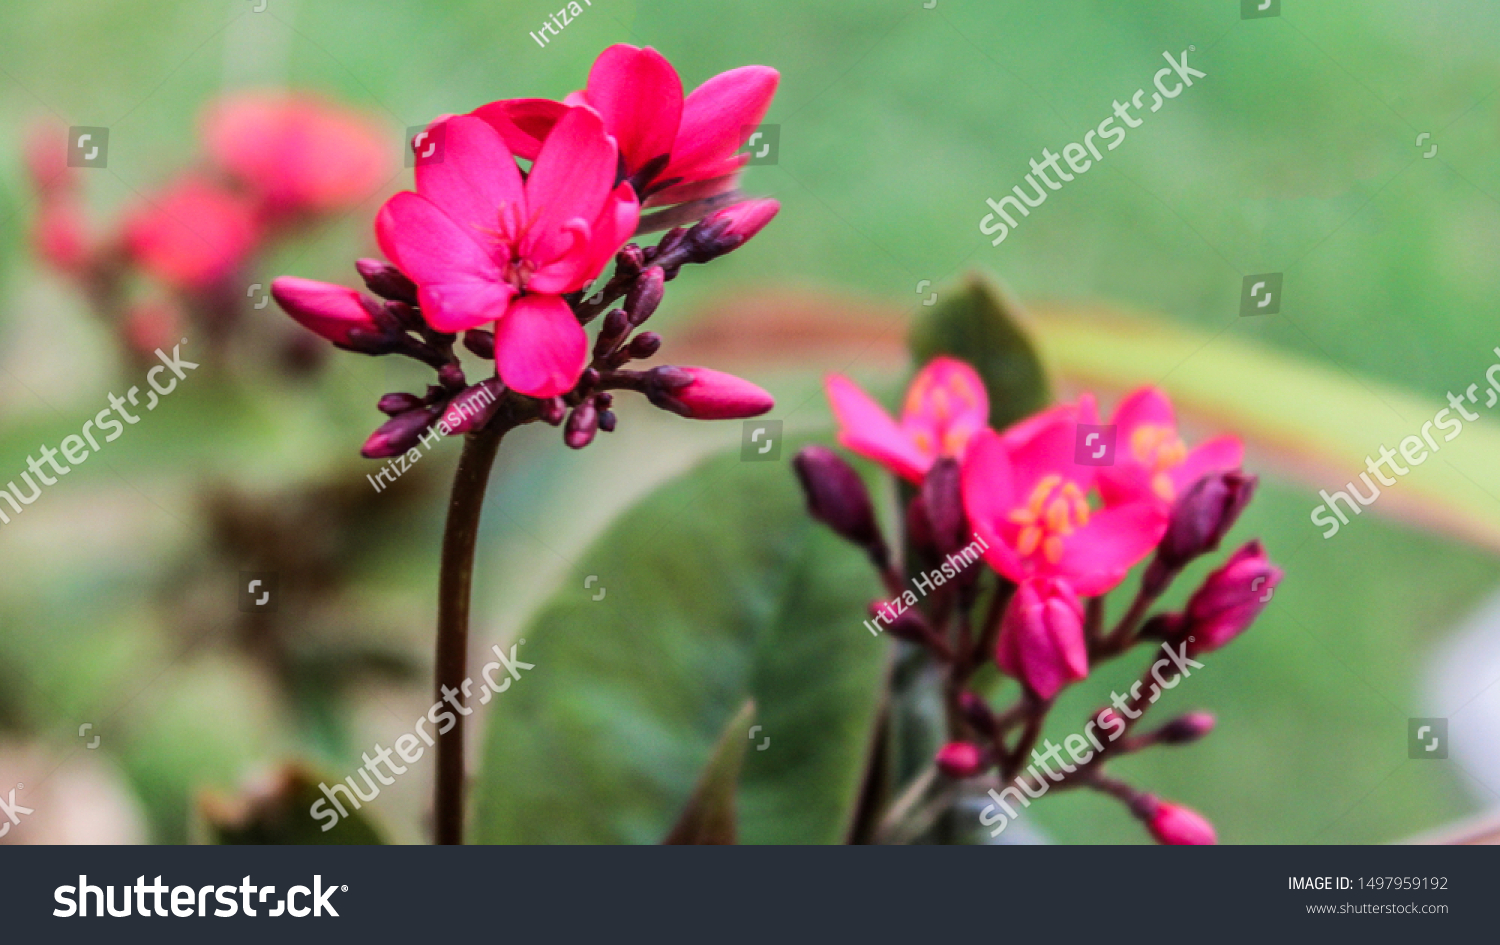 Beautiful Nature Pink Flowers Leafs Hd Stock Photo Edit Now 1497959192